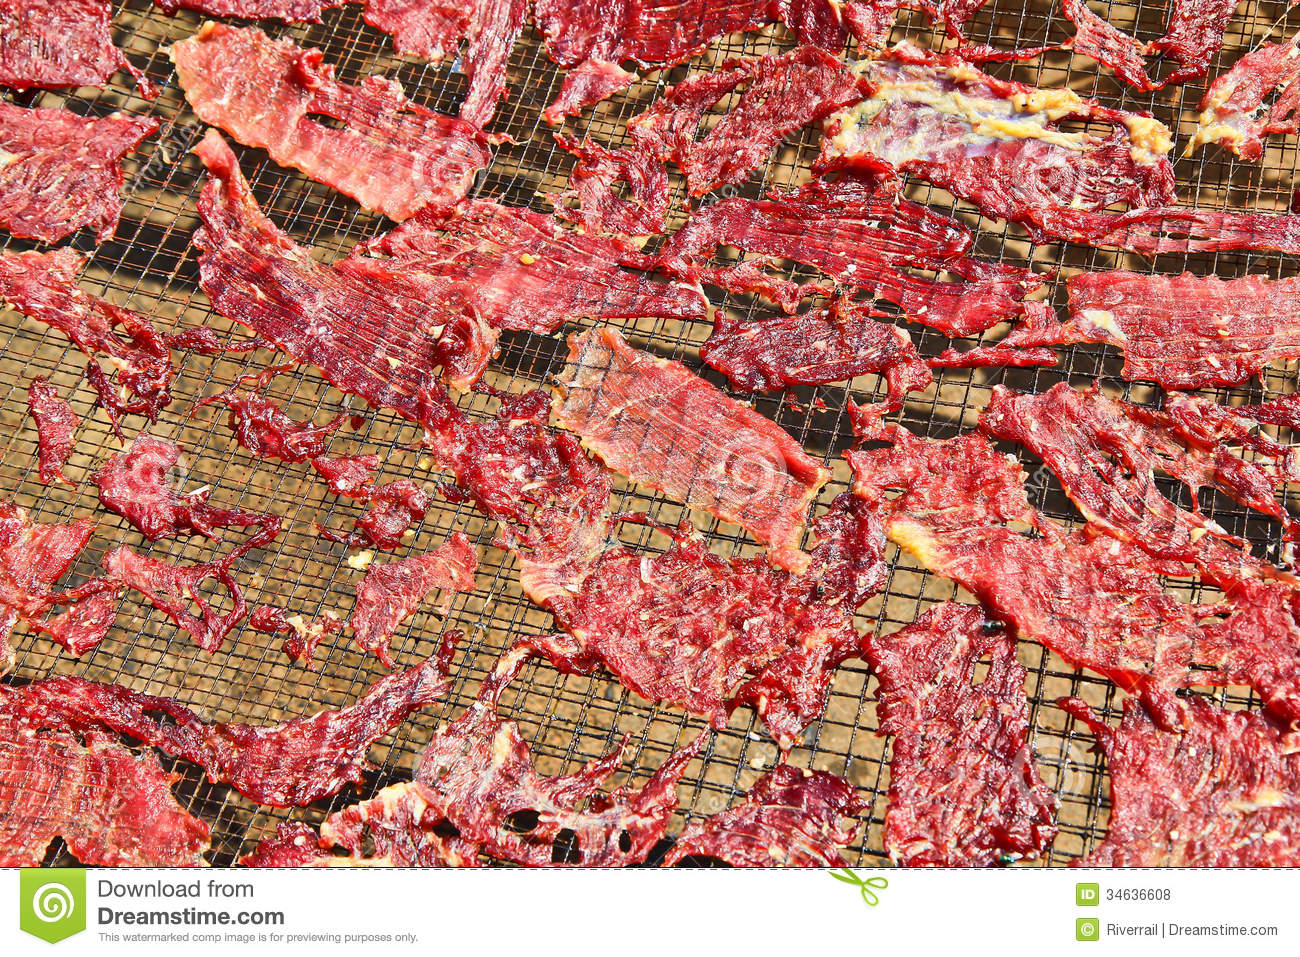 Dried Meat Royalty Free Stock Photos   Image  34636608